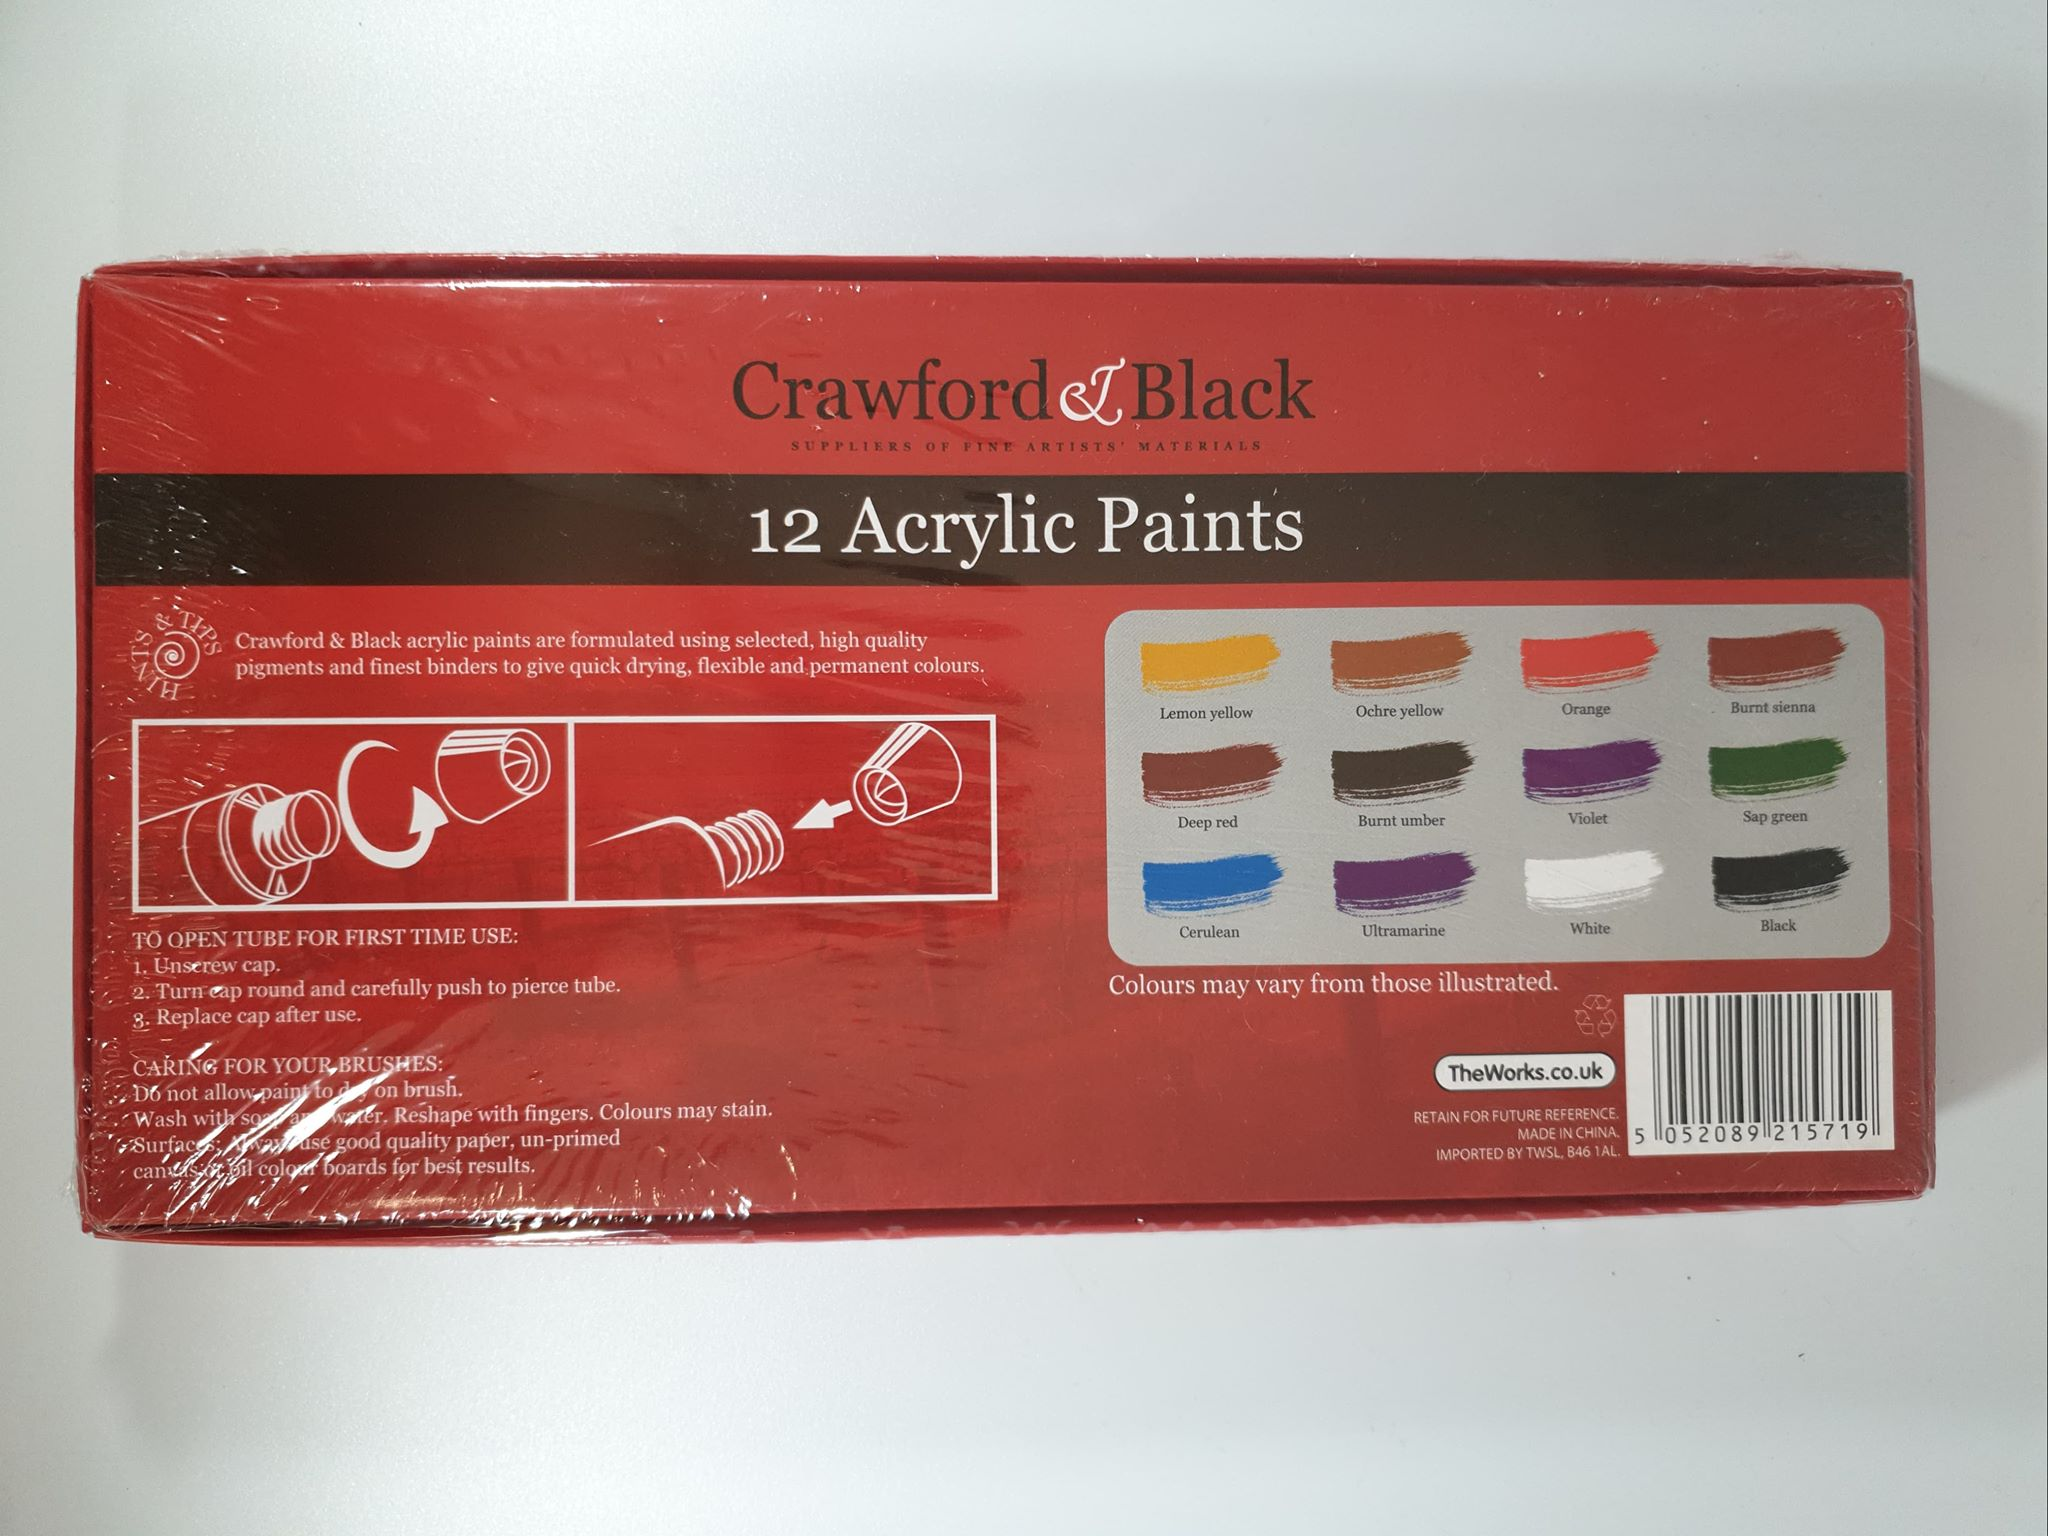 Crawford & Black Acrylic Paints